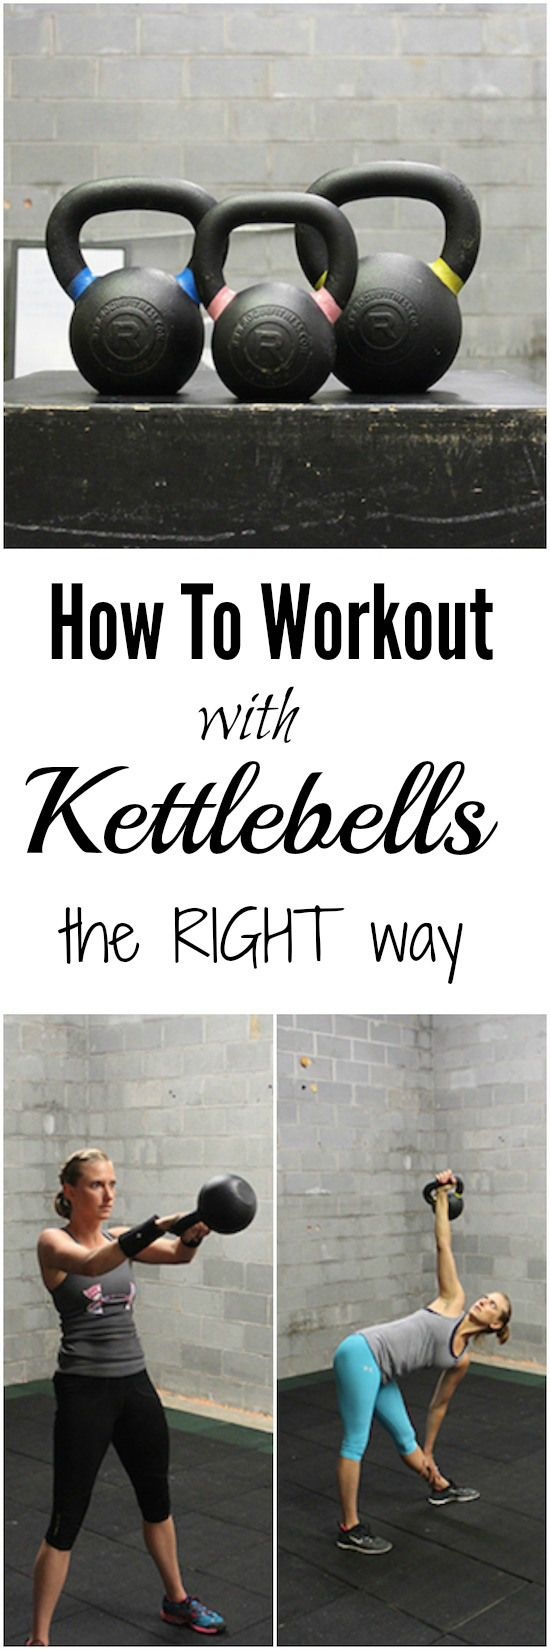 How To Workout With Kettlebells Workout Tips Tricks Reviews Kettlebell Training